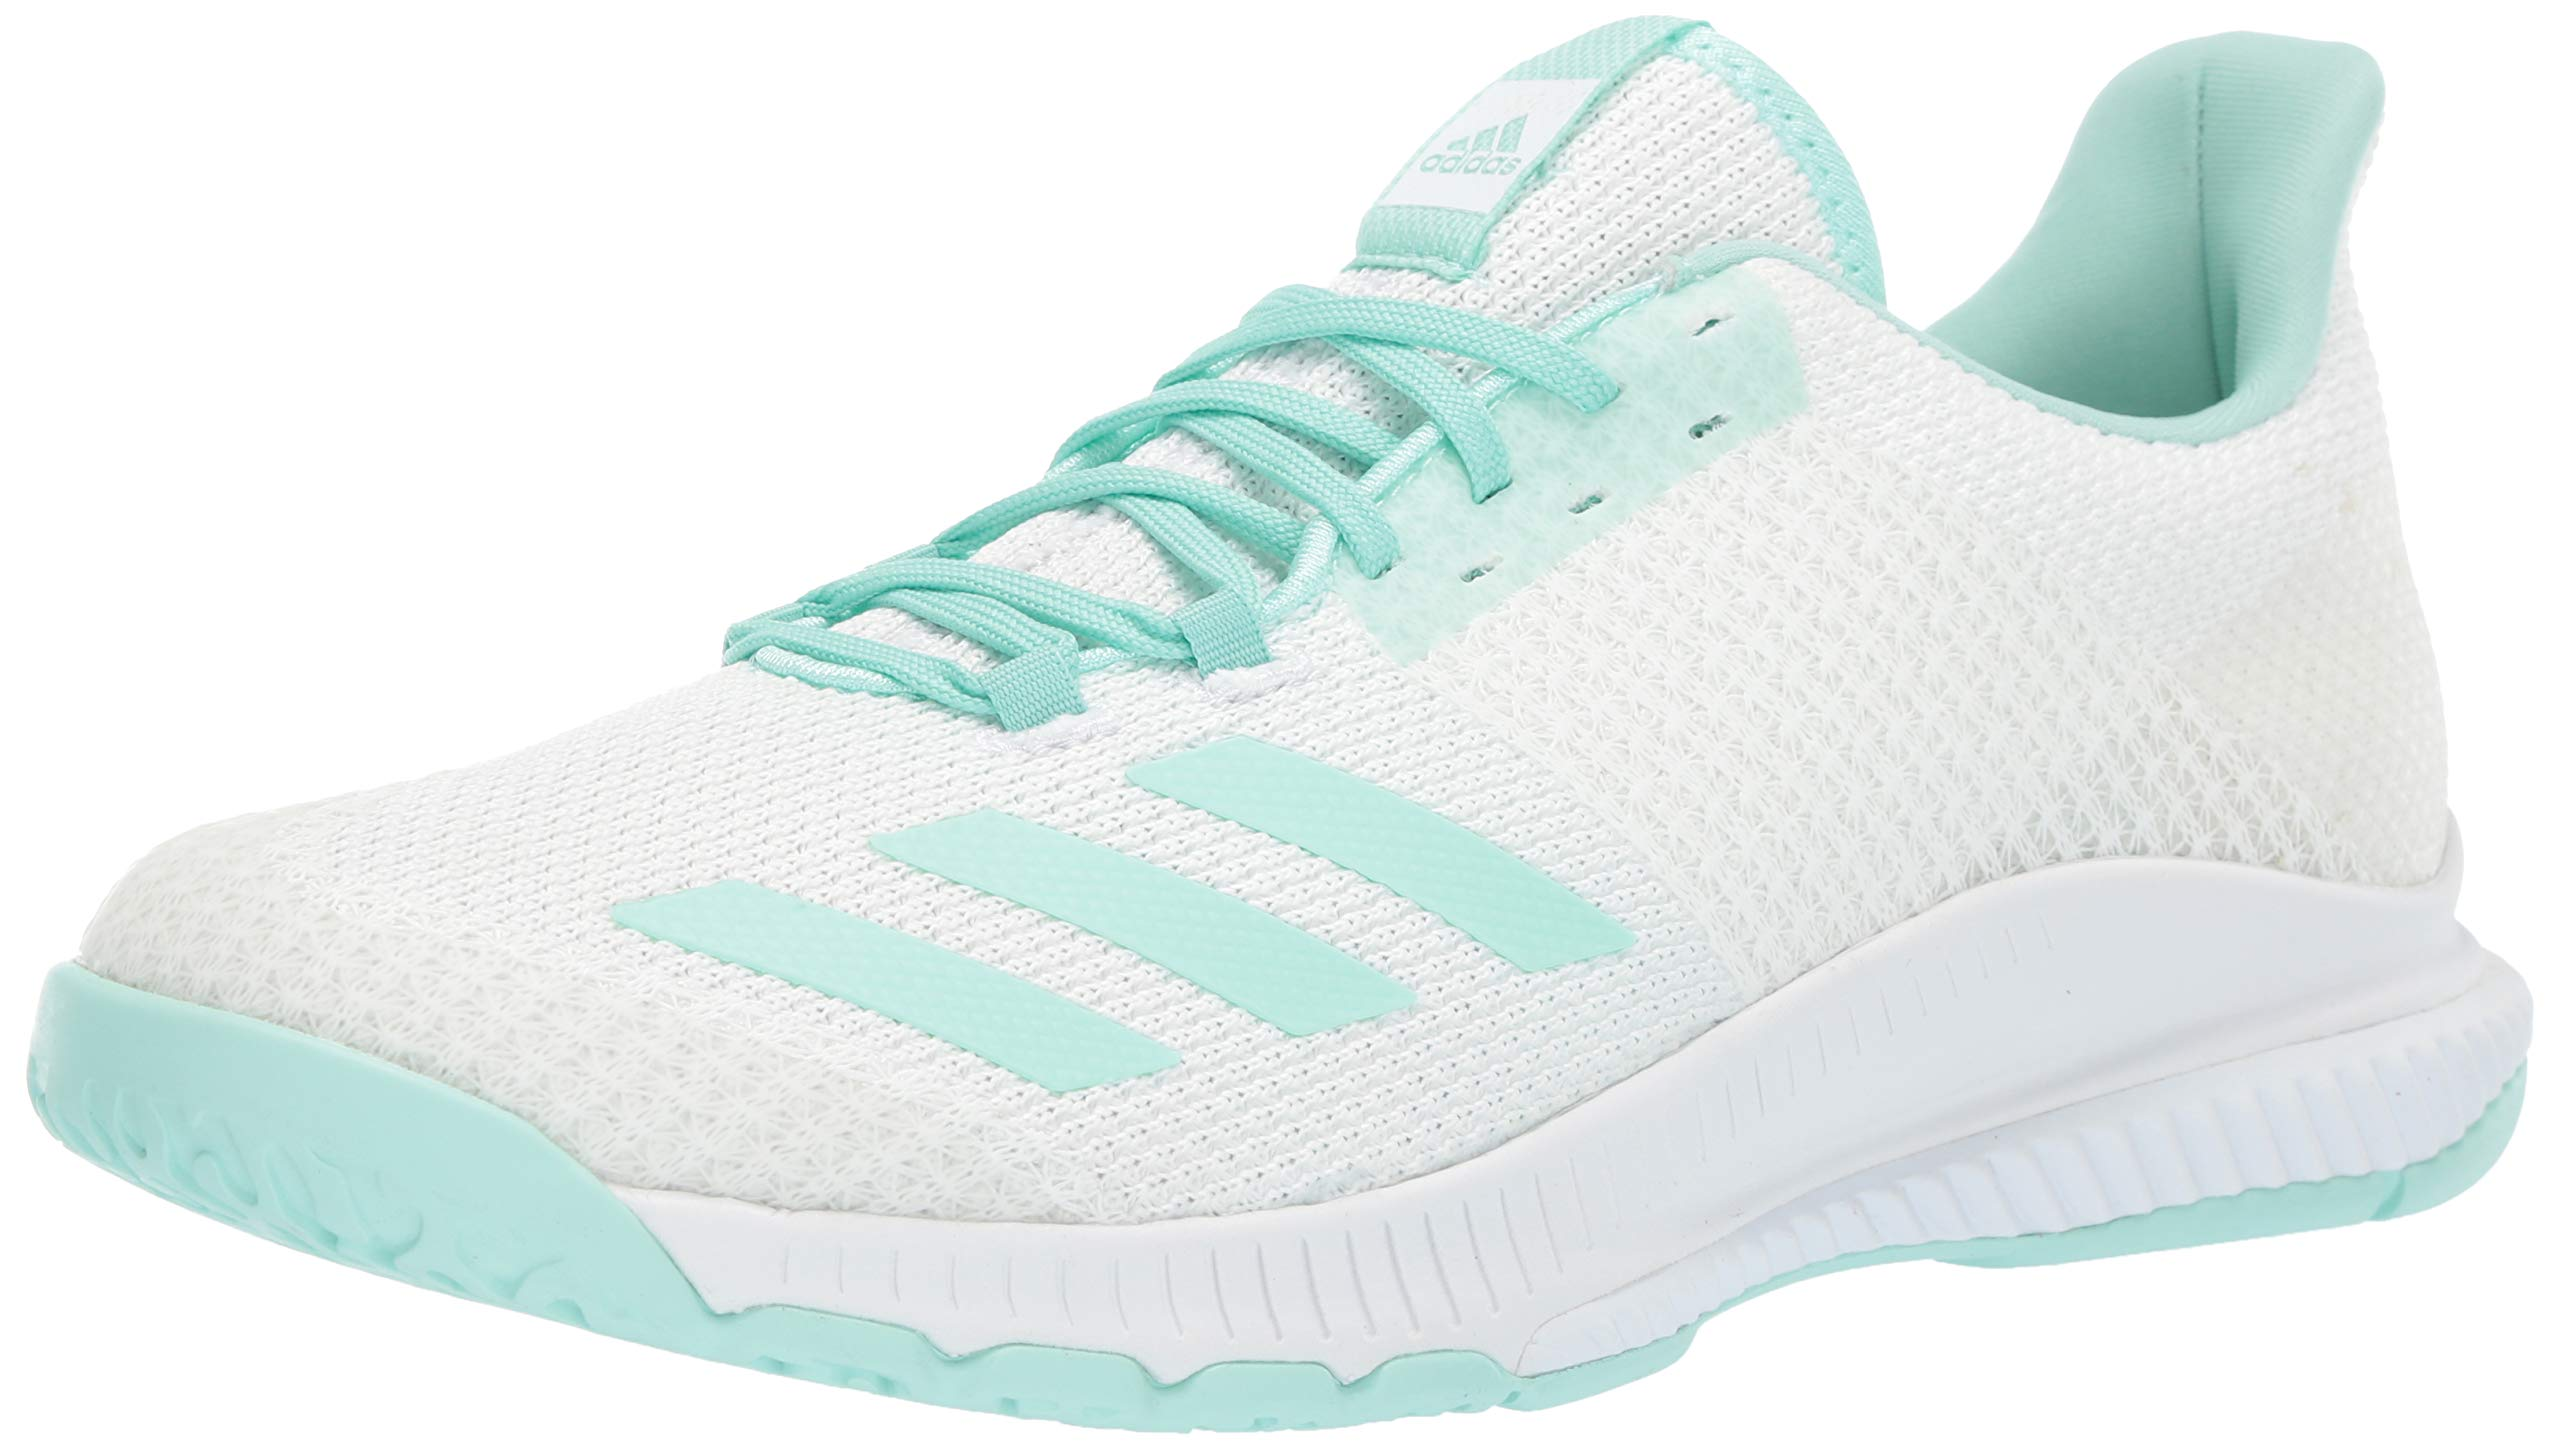 adidas Women's Crazyflight Bounce 2 Shoes, White Clear Mint, 8 M US by adidas